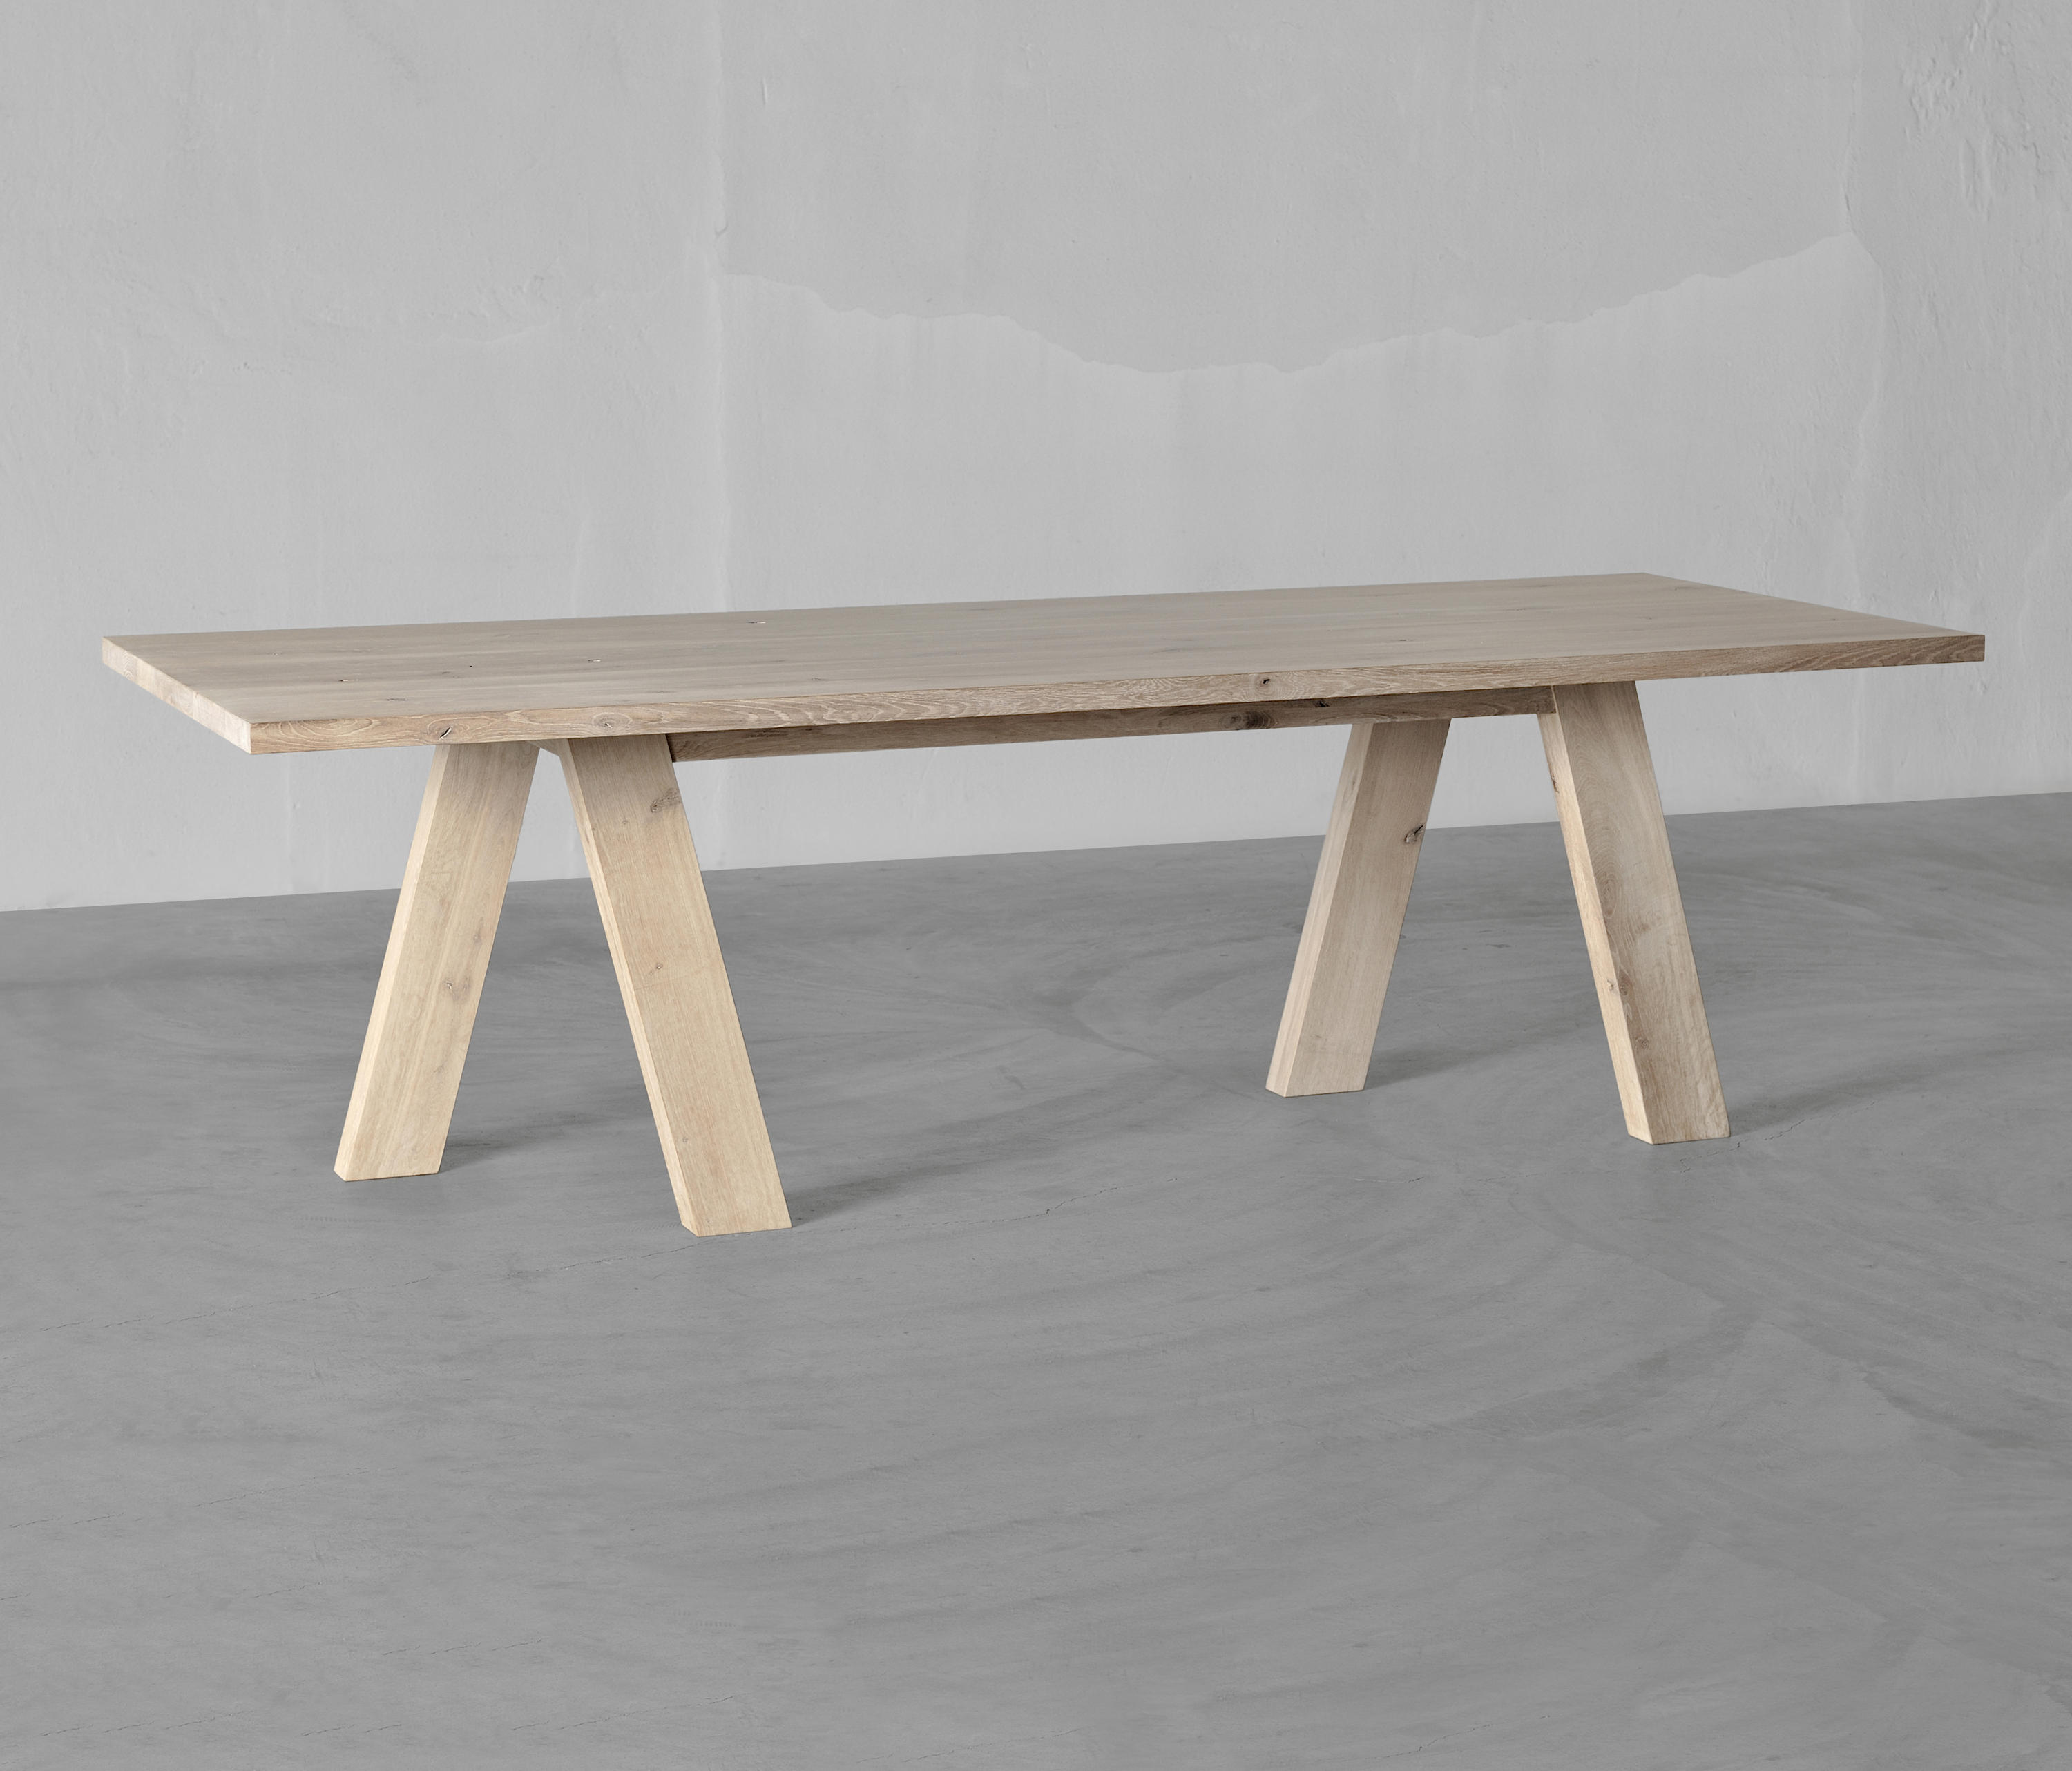 Tisch design  GO TABLE - Restaurant tables from Vitamin Design | Architonic